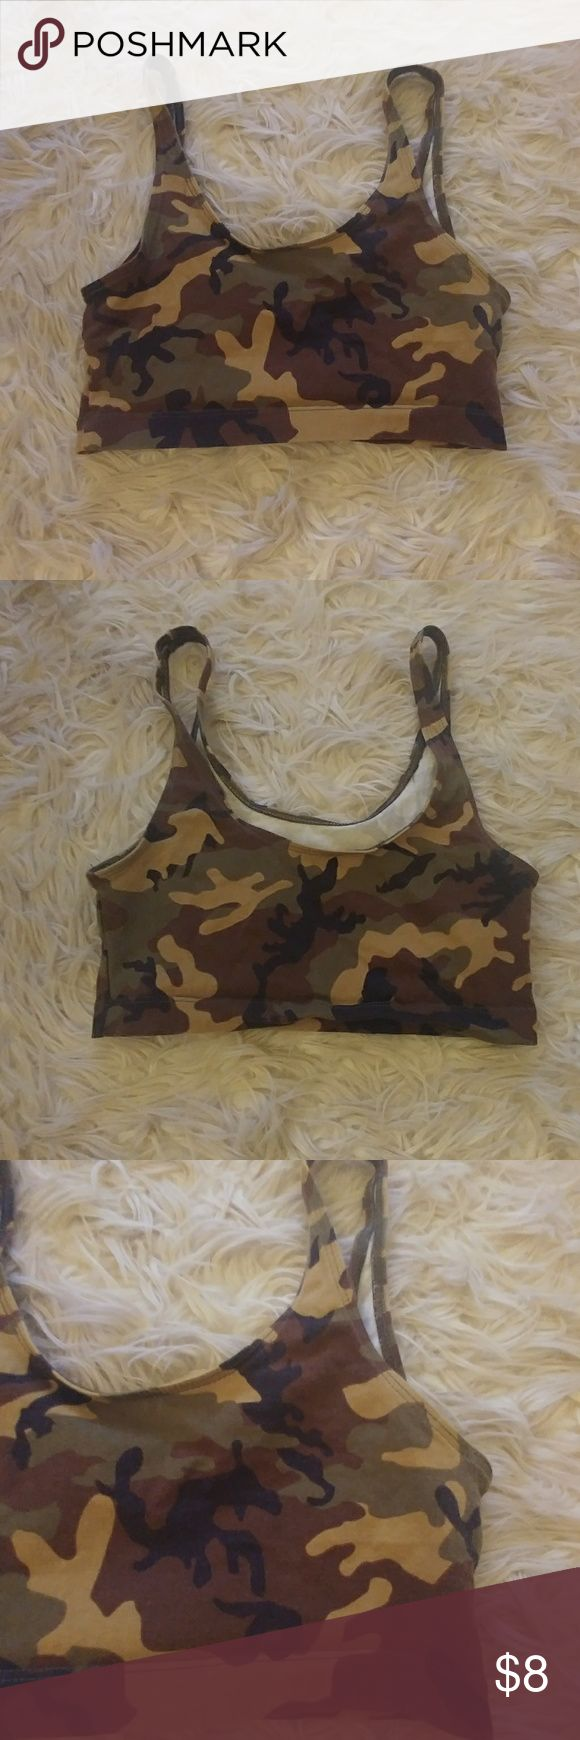 ⚫Kylie Jenner Camo Sport Bra Small ⚫ Trendy camo sports bra from Kylie Jenner's line. No Kylie brand on the bra which I'm surprised but it came from her line. Size small. Thin material. Kylie Jenner Intimates & Sleepwear Bras